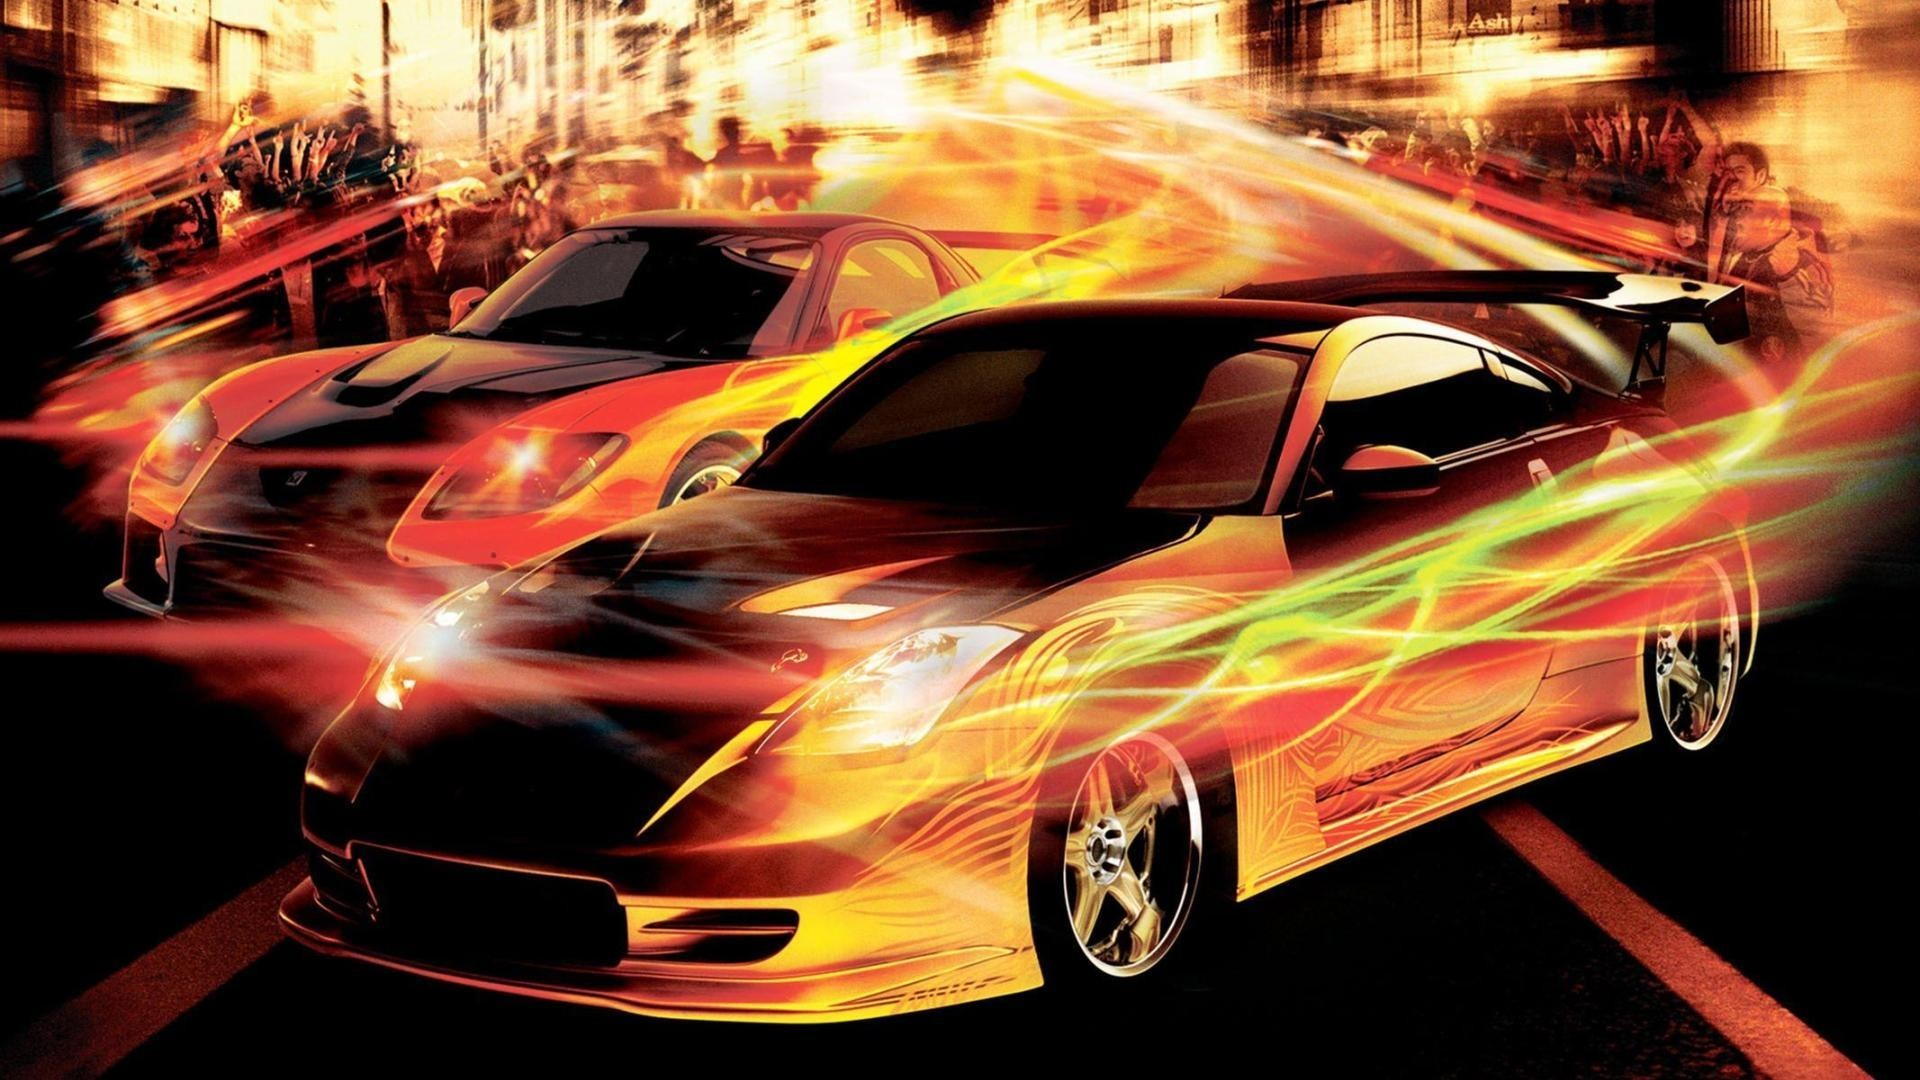 fast furious hd wallpapers - Fast And Furious 7 Cars Wallpapers